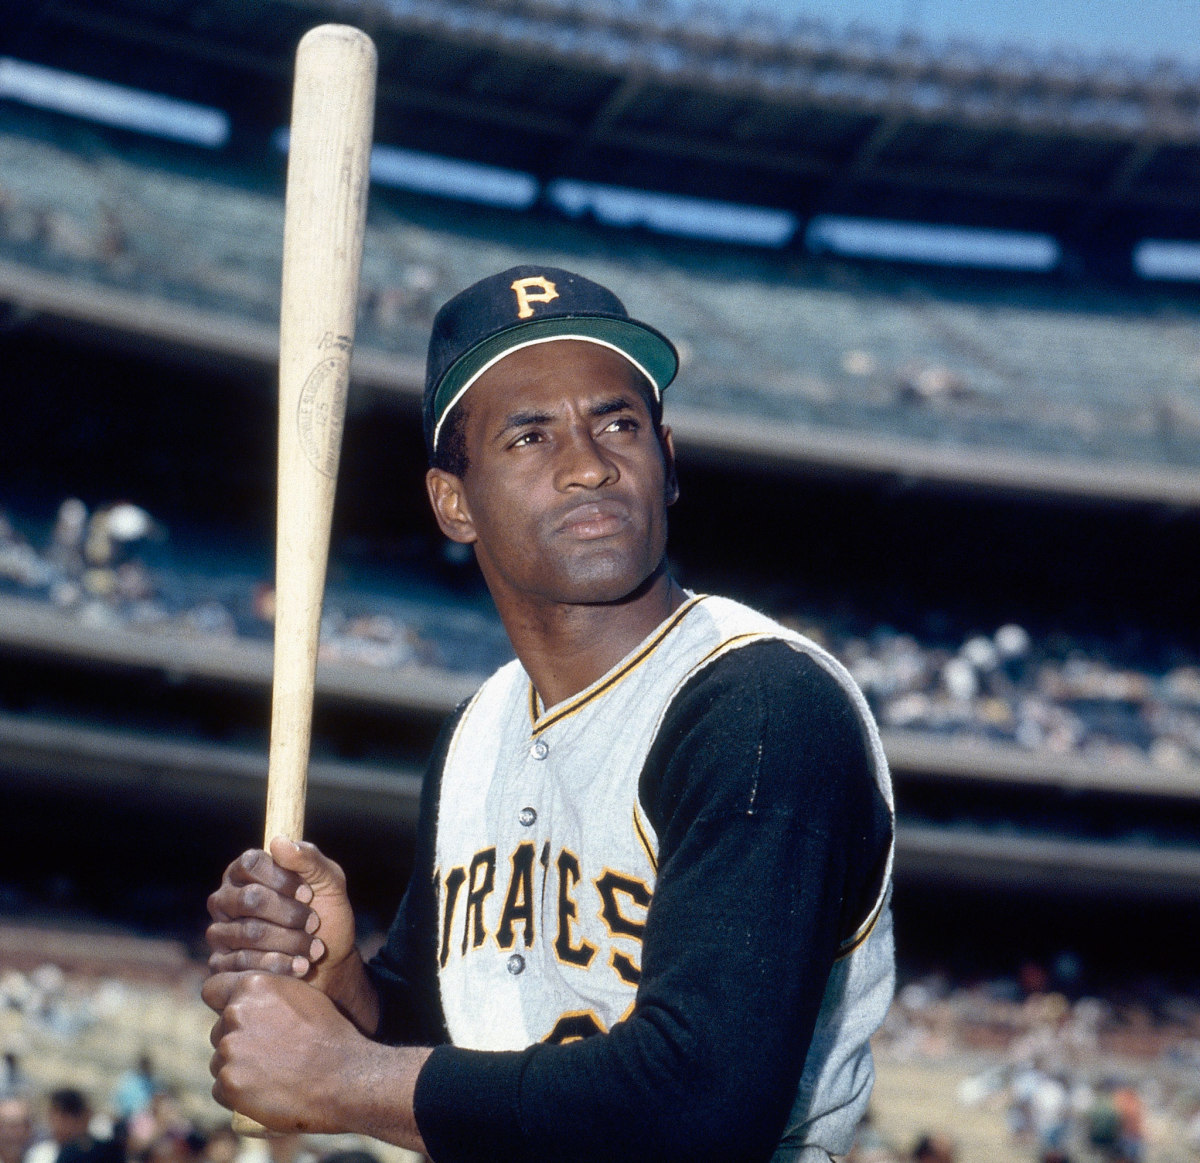 Roberto Clemente, a Hero On and Off the Baseball Field